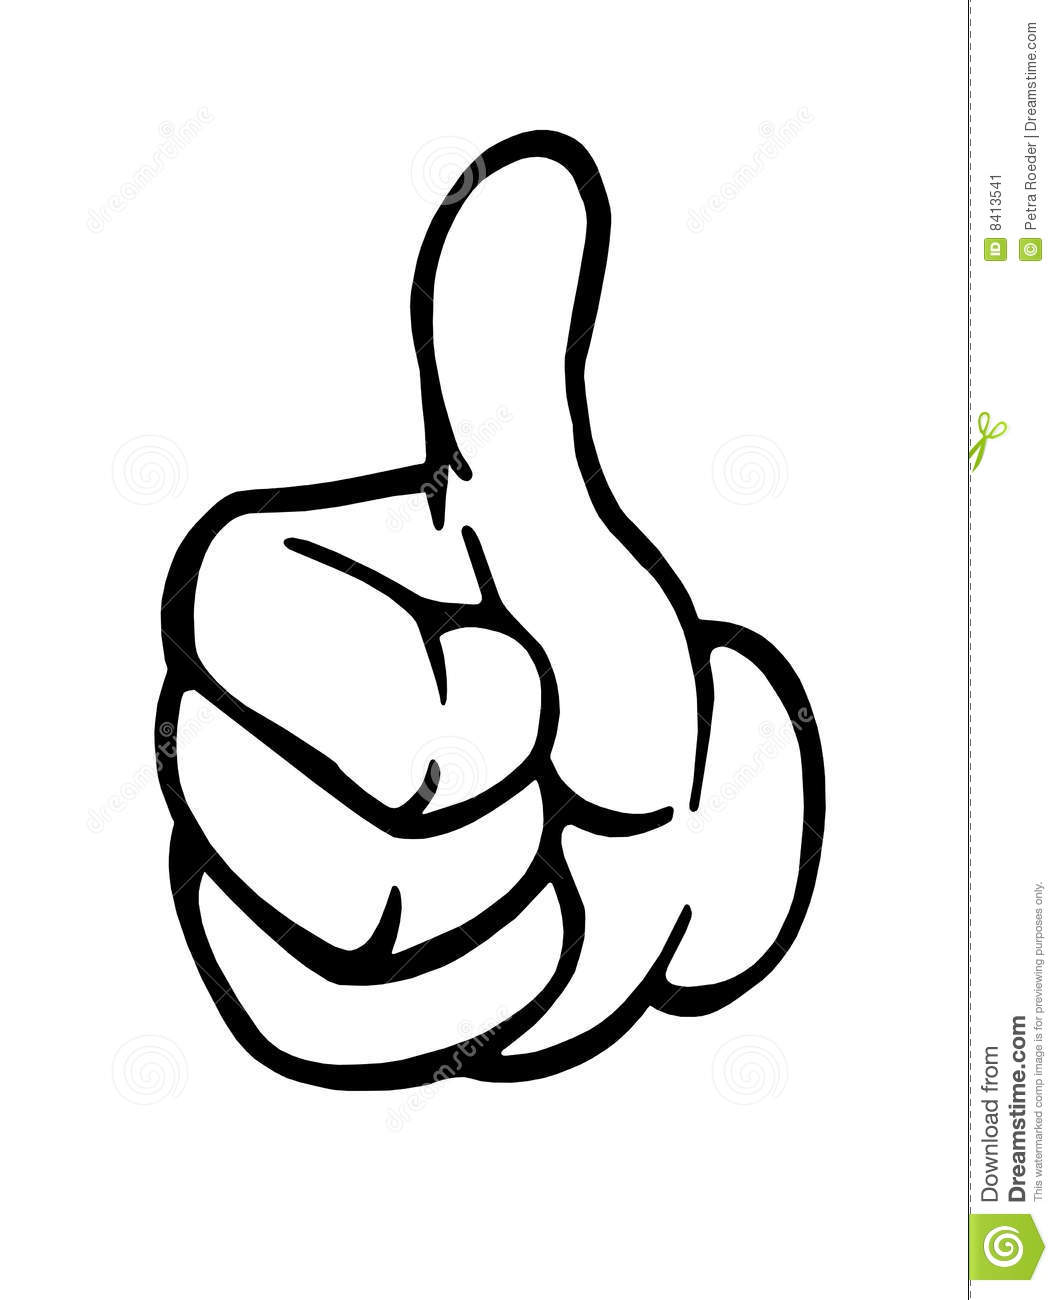 Photos Of Thumbs Up